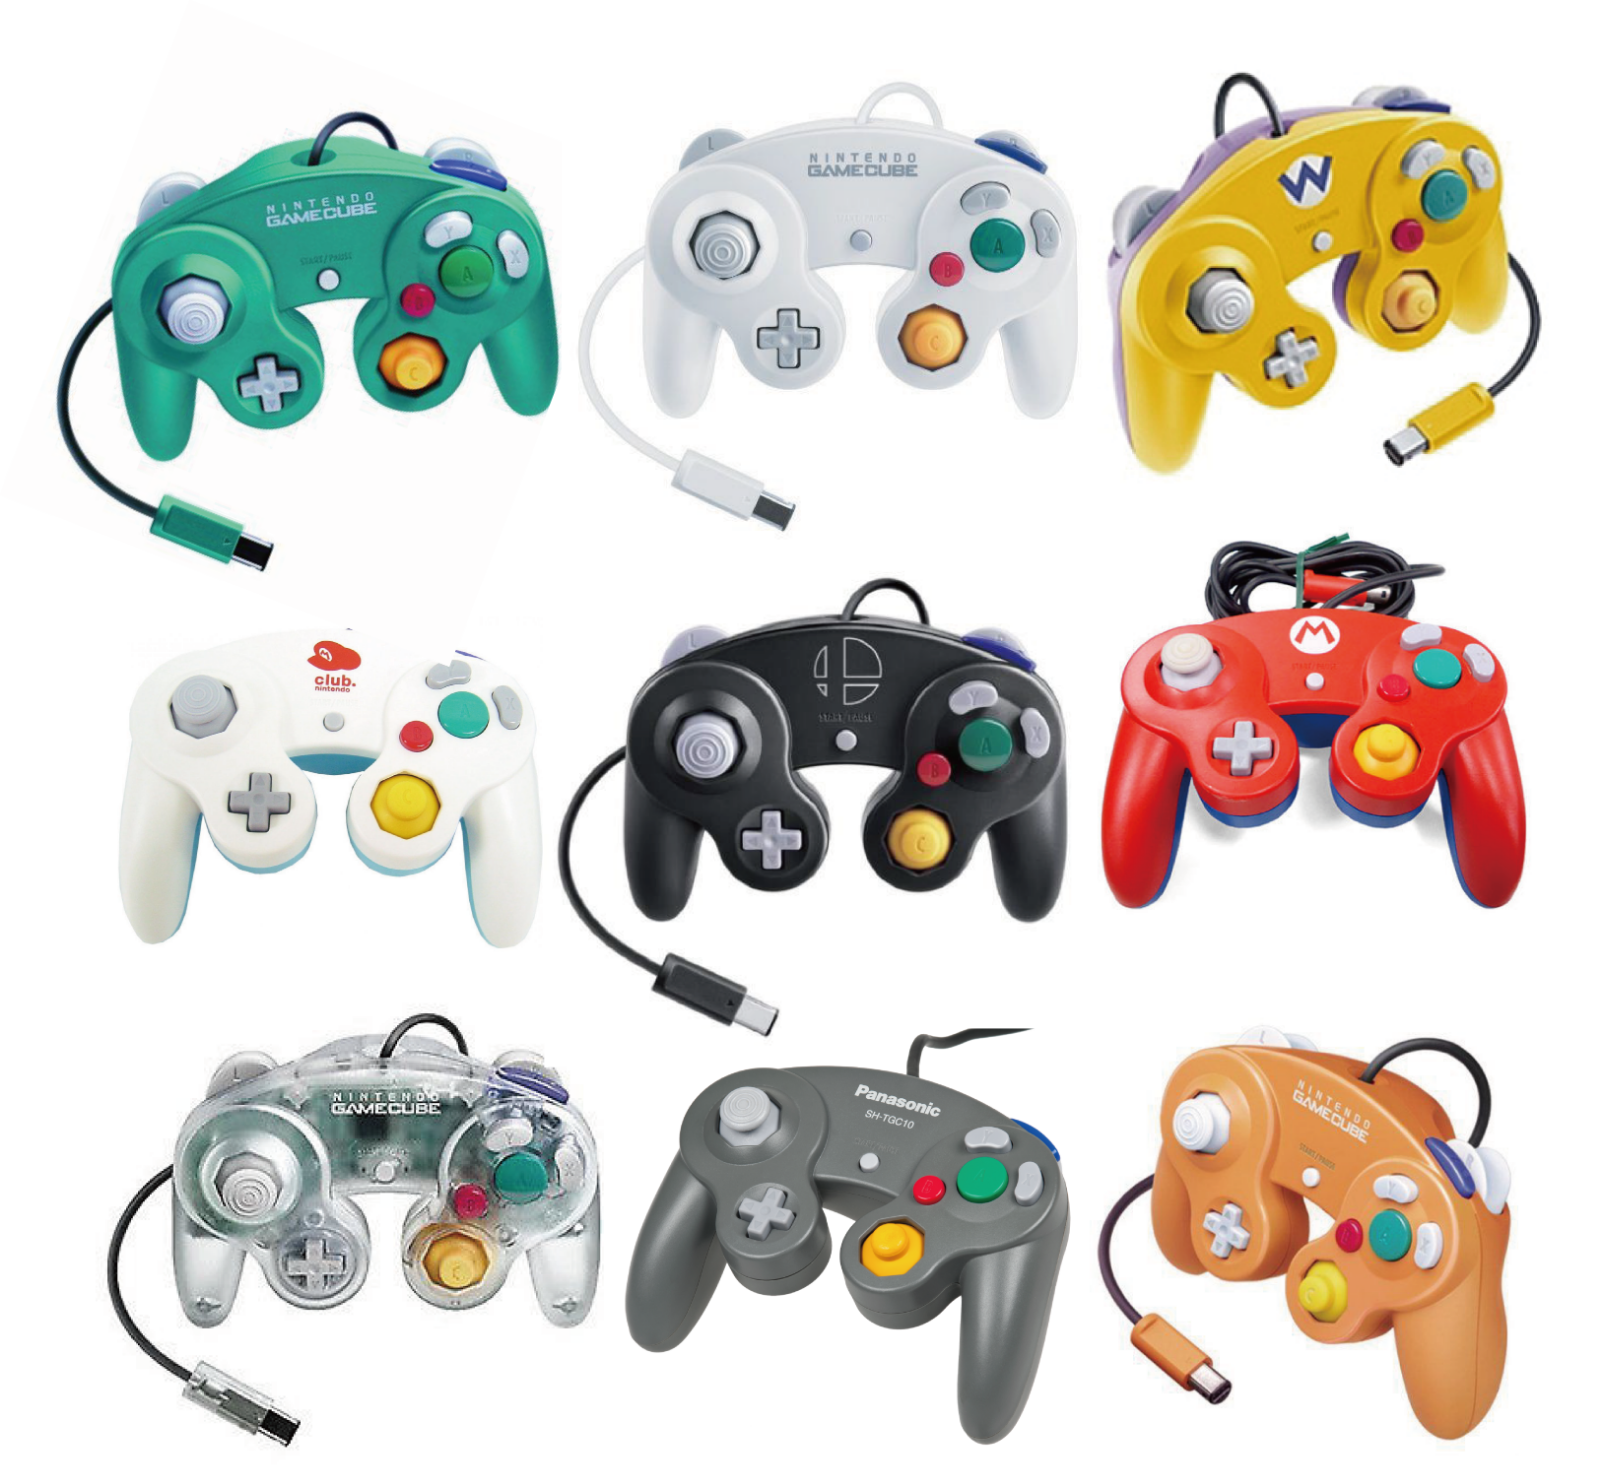 【30 variations】Nintendo Official GameCube controller Various colors 3